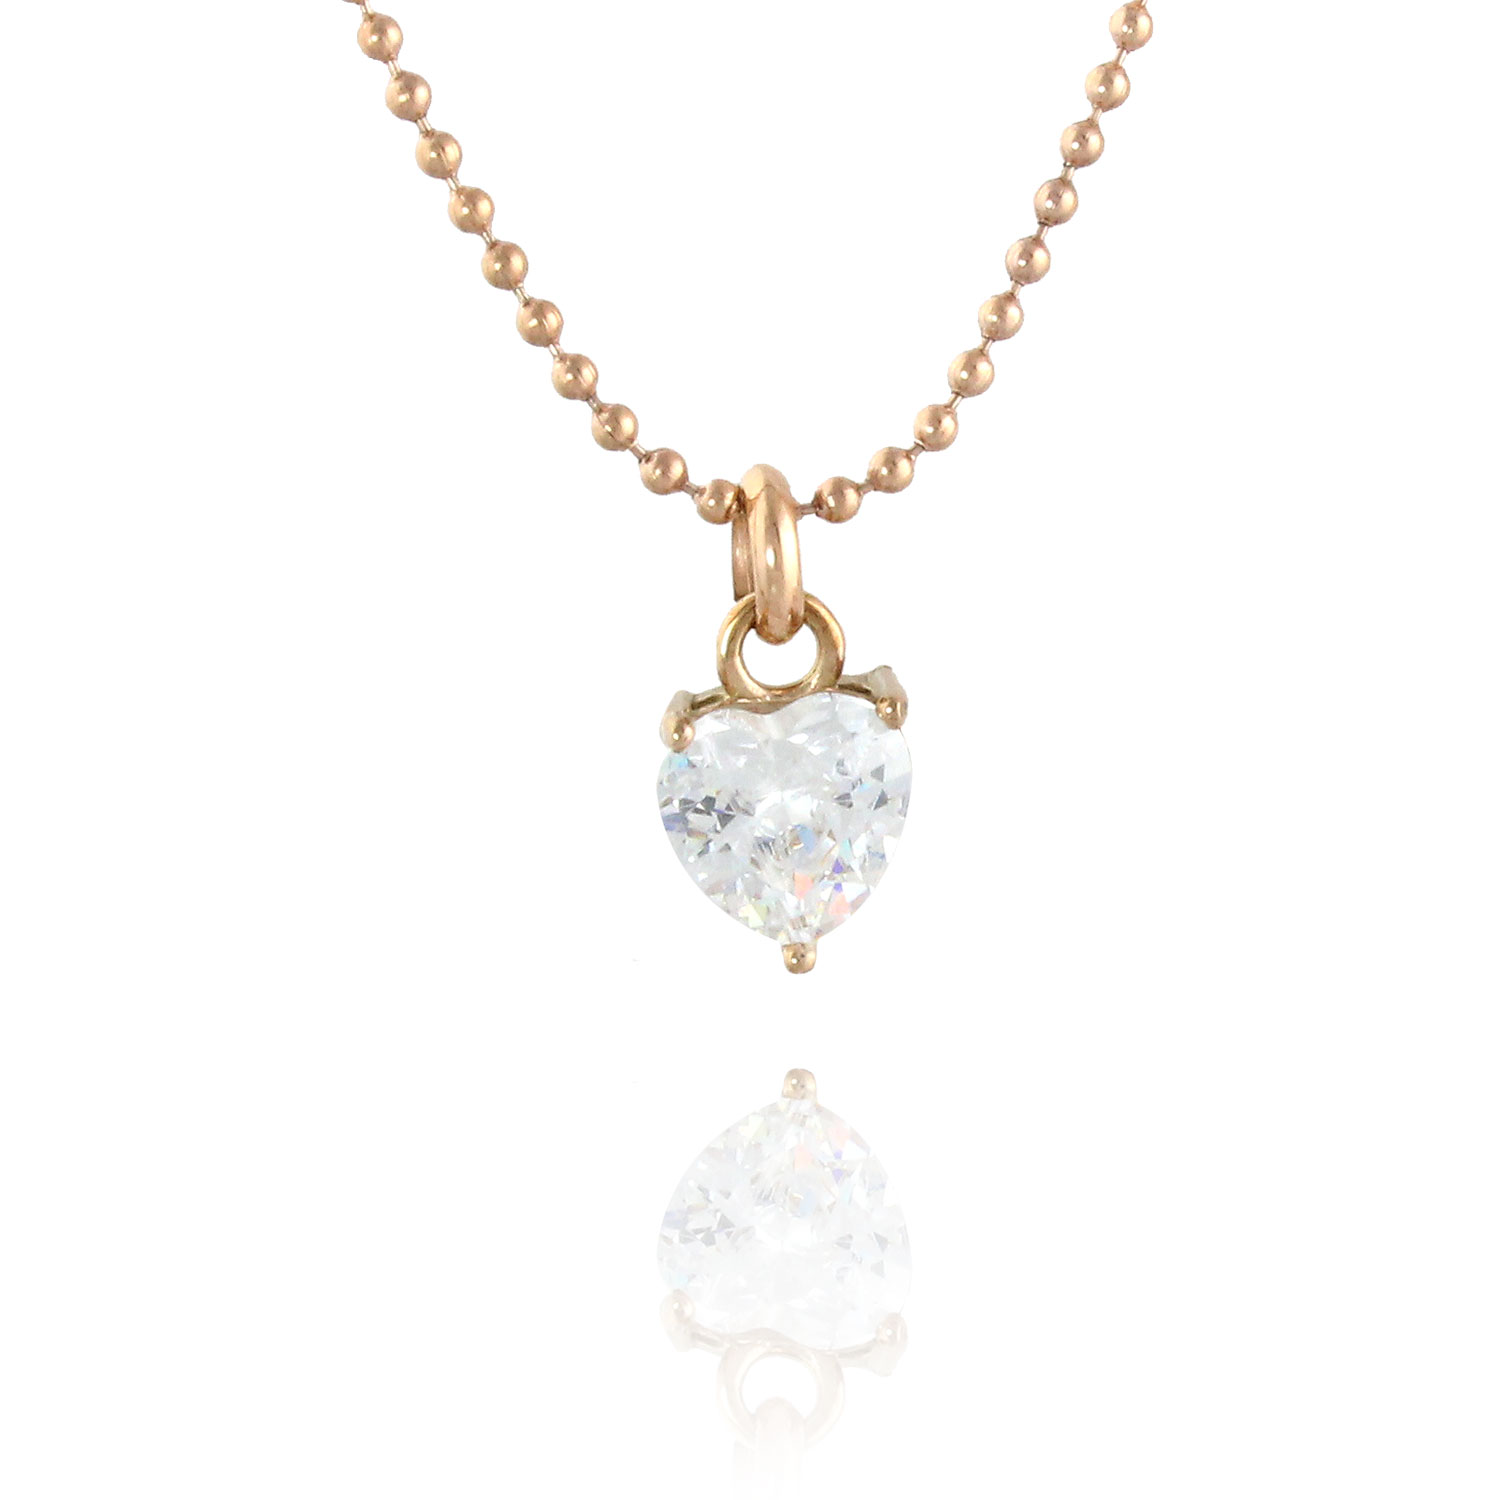 Simply Elegant Heart Rose Gold Plated & White Cubic Zirconia Pendant Necklace - 16 Inch Chain